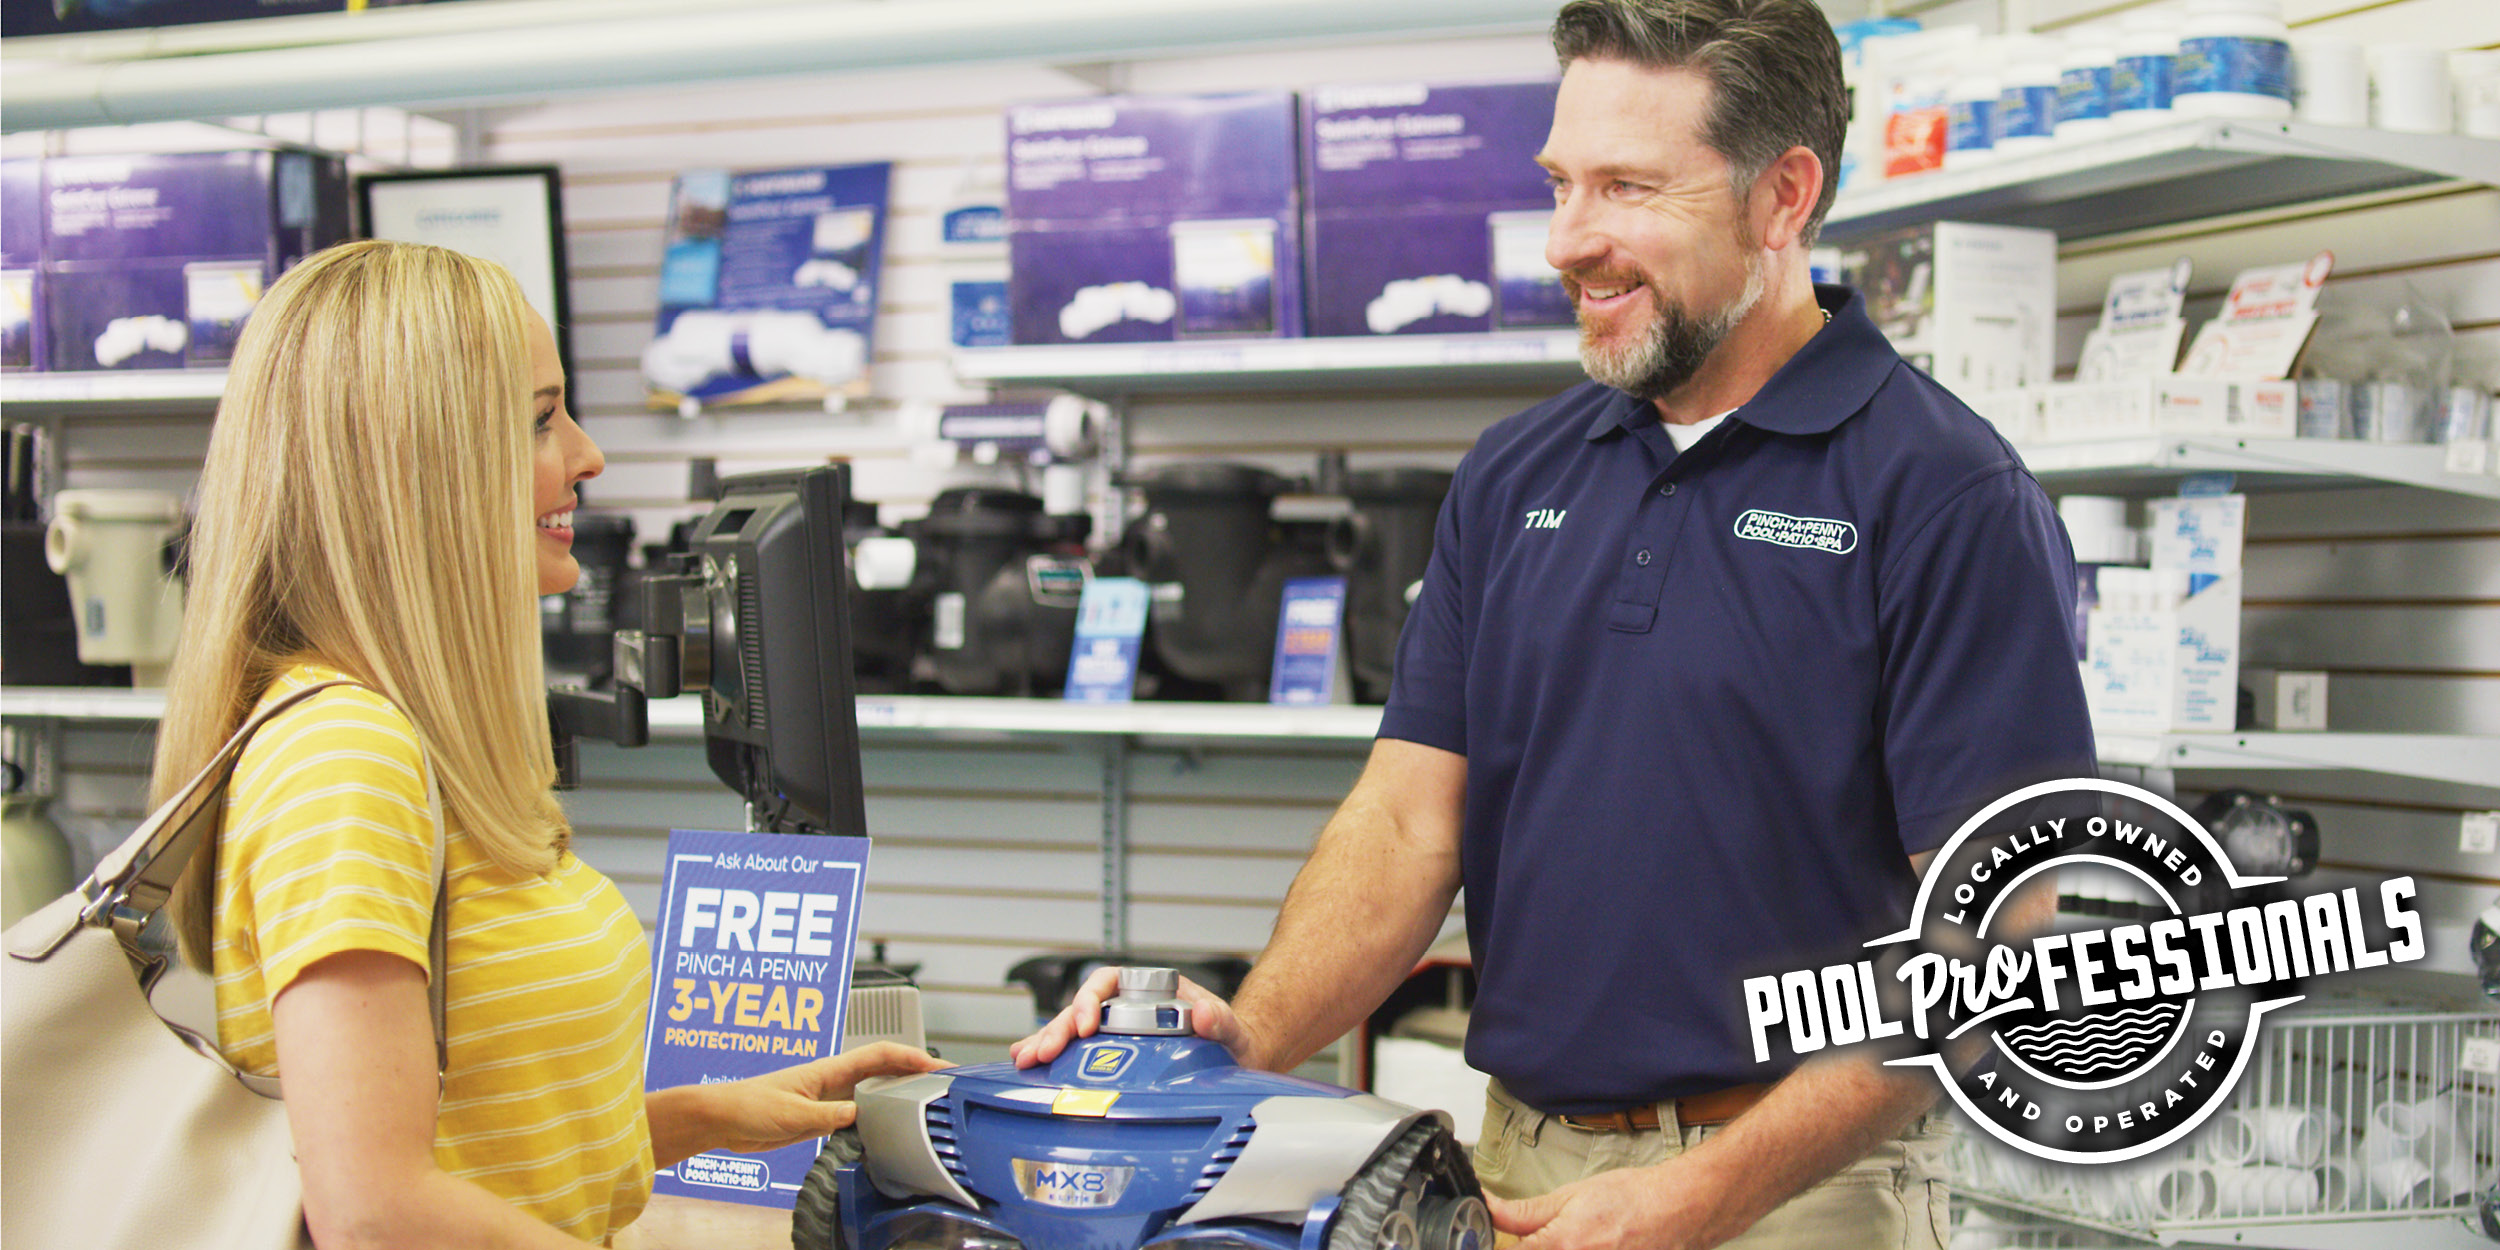 GET UP TO $250 ON AUTOMATIC POOL CLEANERS!